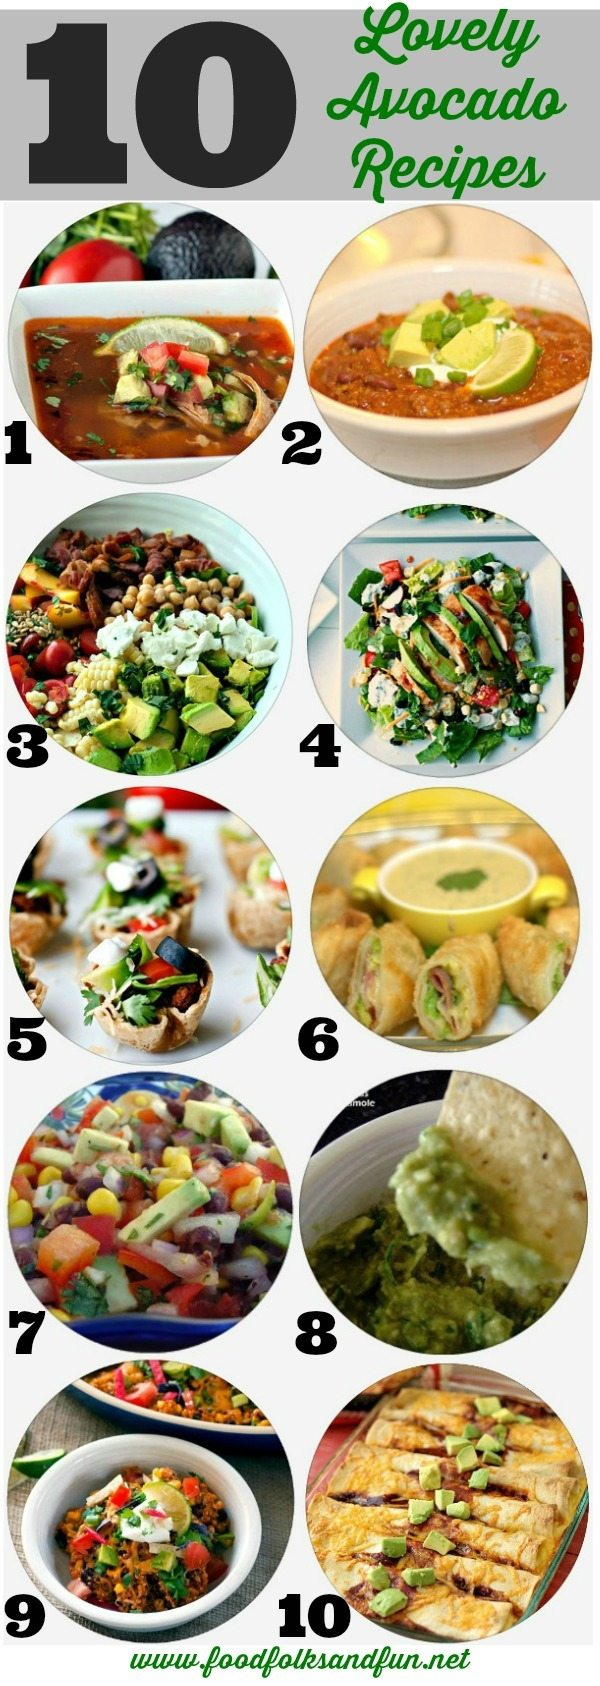 10 Lovely Avocado Recipes